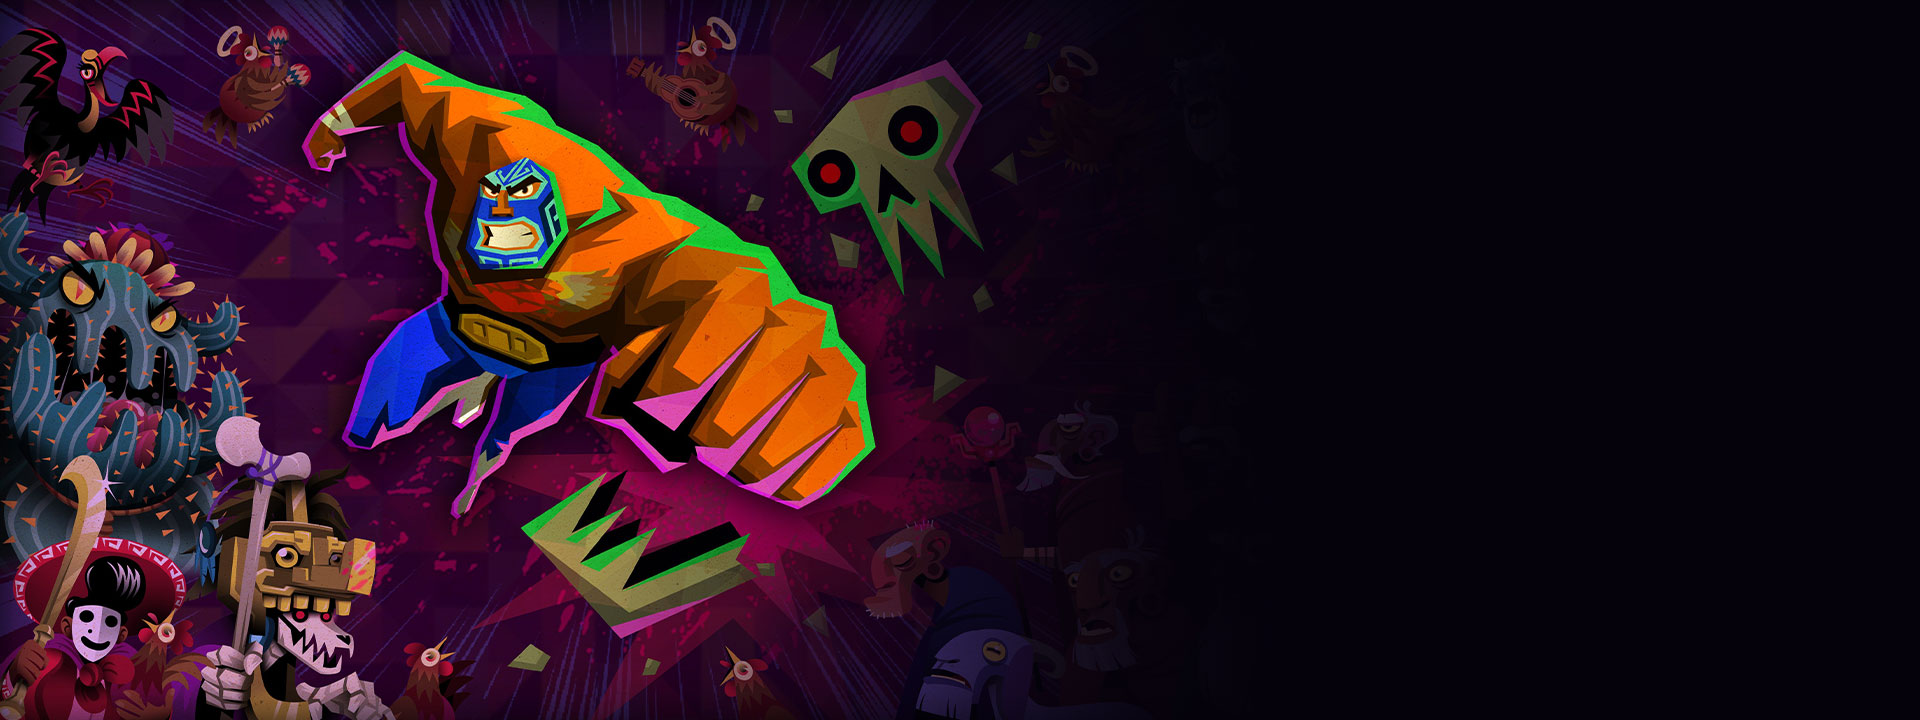 Game graphic from Guacamelee! 2 in front of characters from Guacamelee! 2